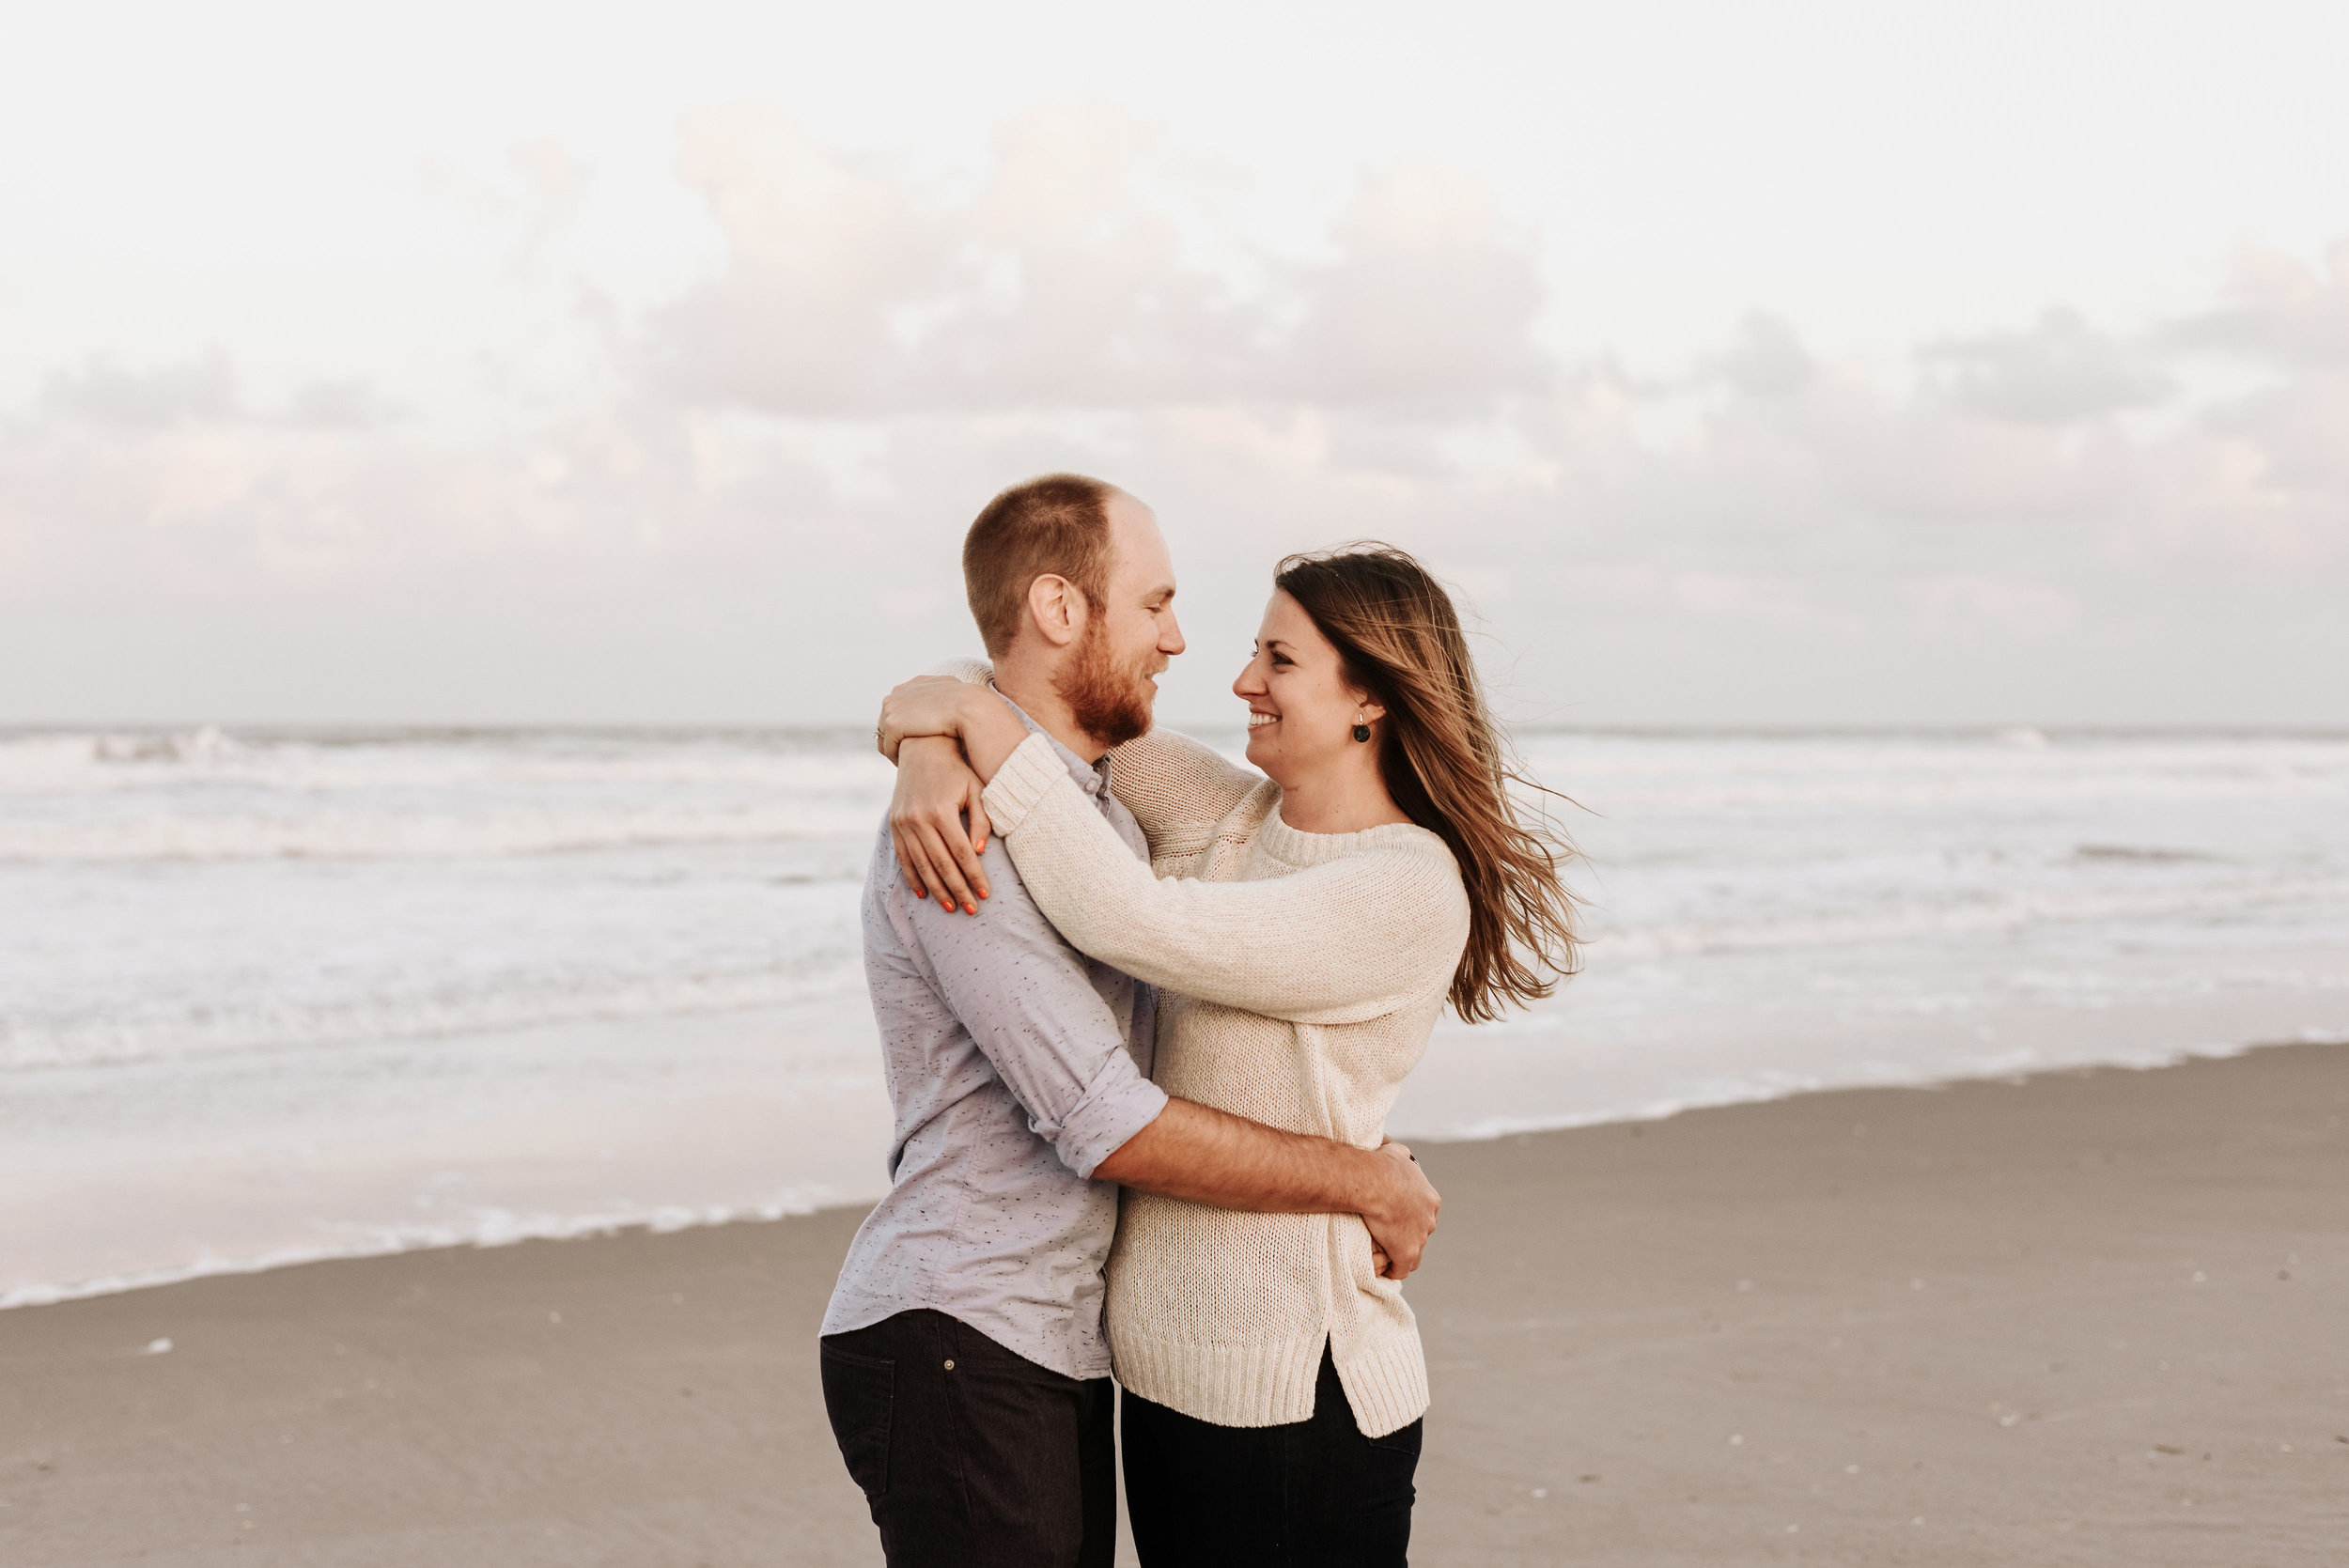 Courtney_Luke_Wedding_Engagement_Session_Cocoa_Beach_Florida_Photography_by_V_4865.jpg